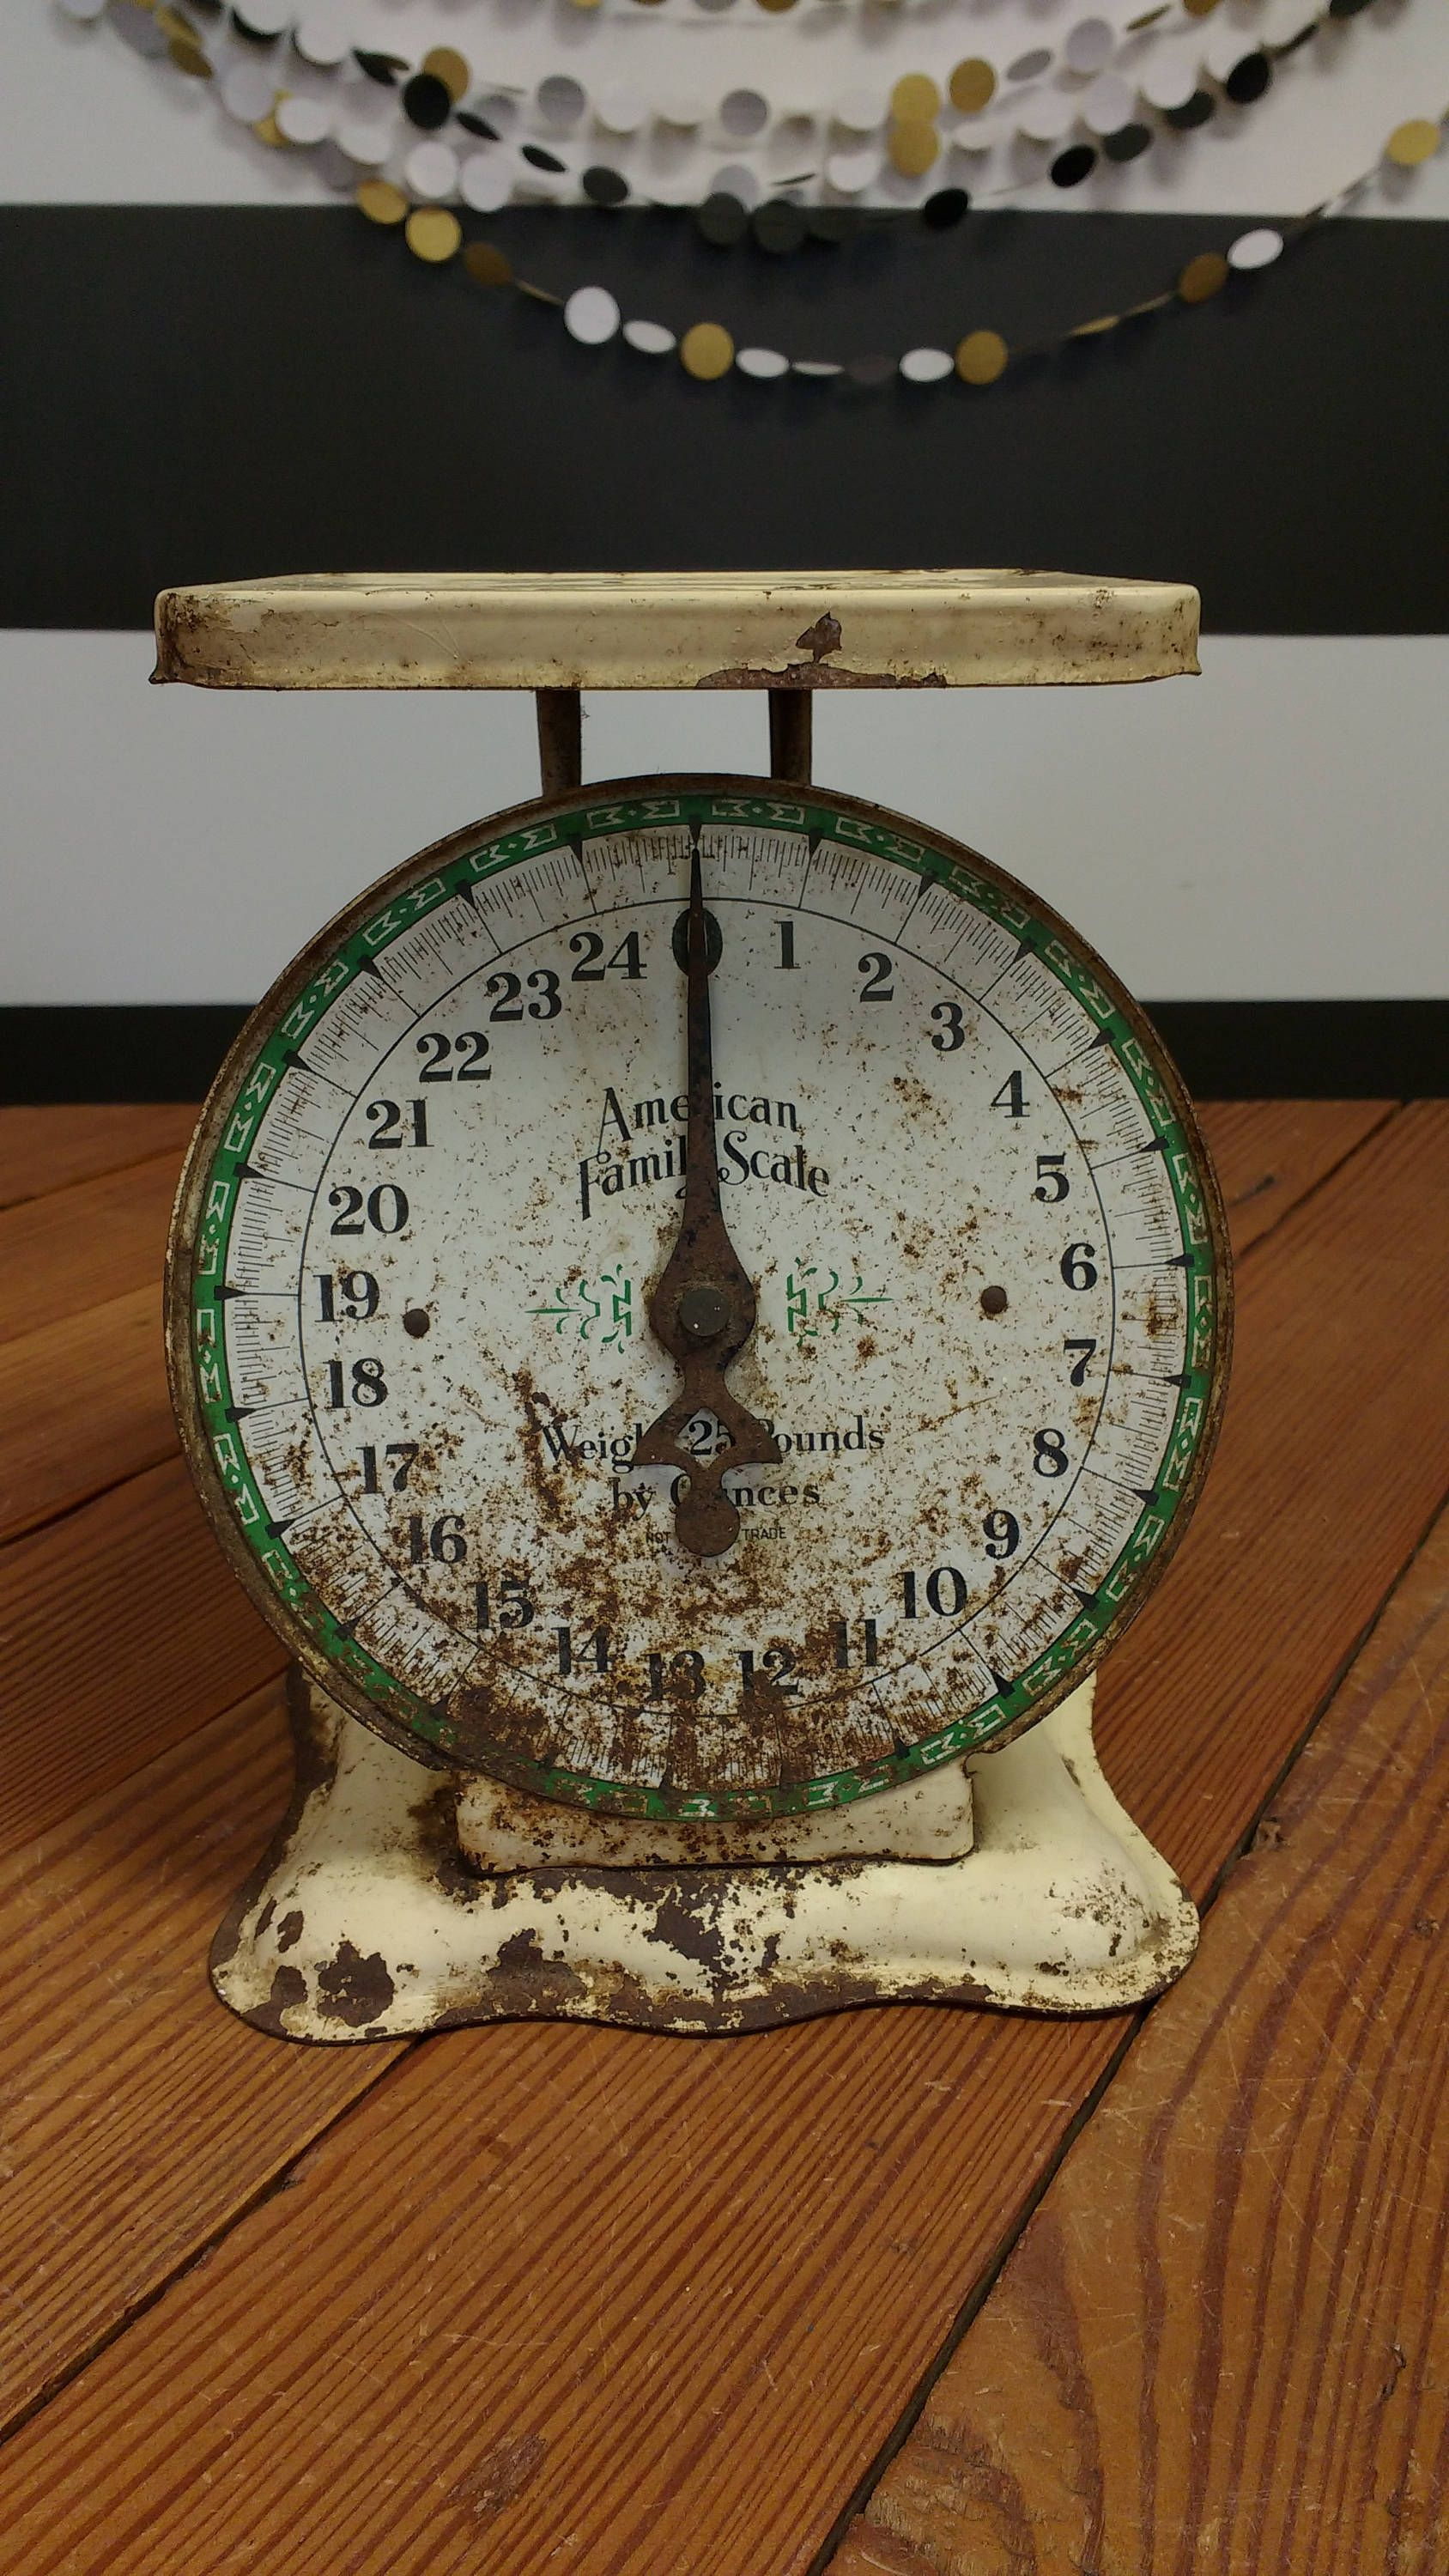 Antique Kitchen Scale; Kitchen Scale; Antique Scale; Kitchen Decor; Counter top Display; Farmhouse Style; Joanna Gaines; Fixer Upper Style by LynnMichelleDesign on Etsy